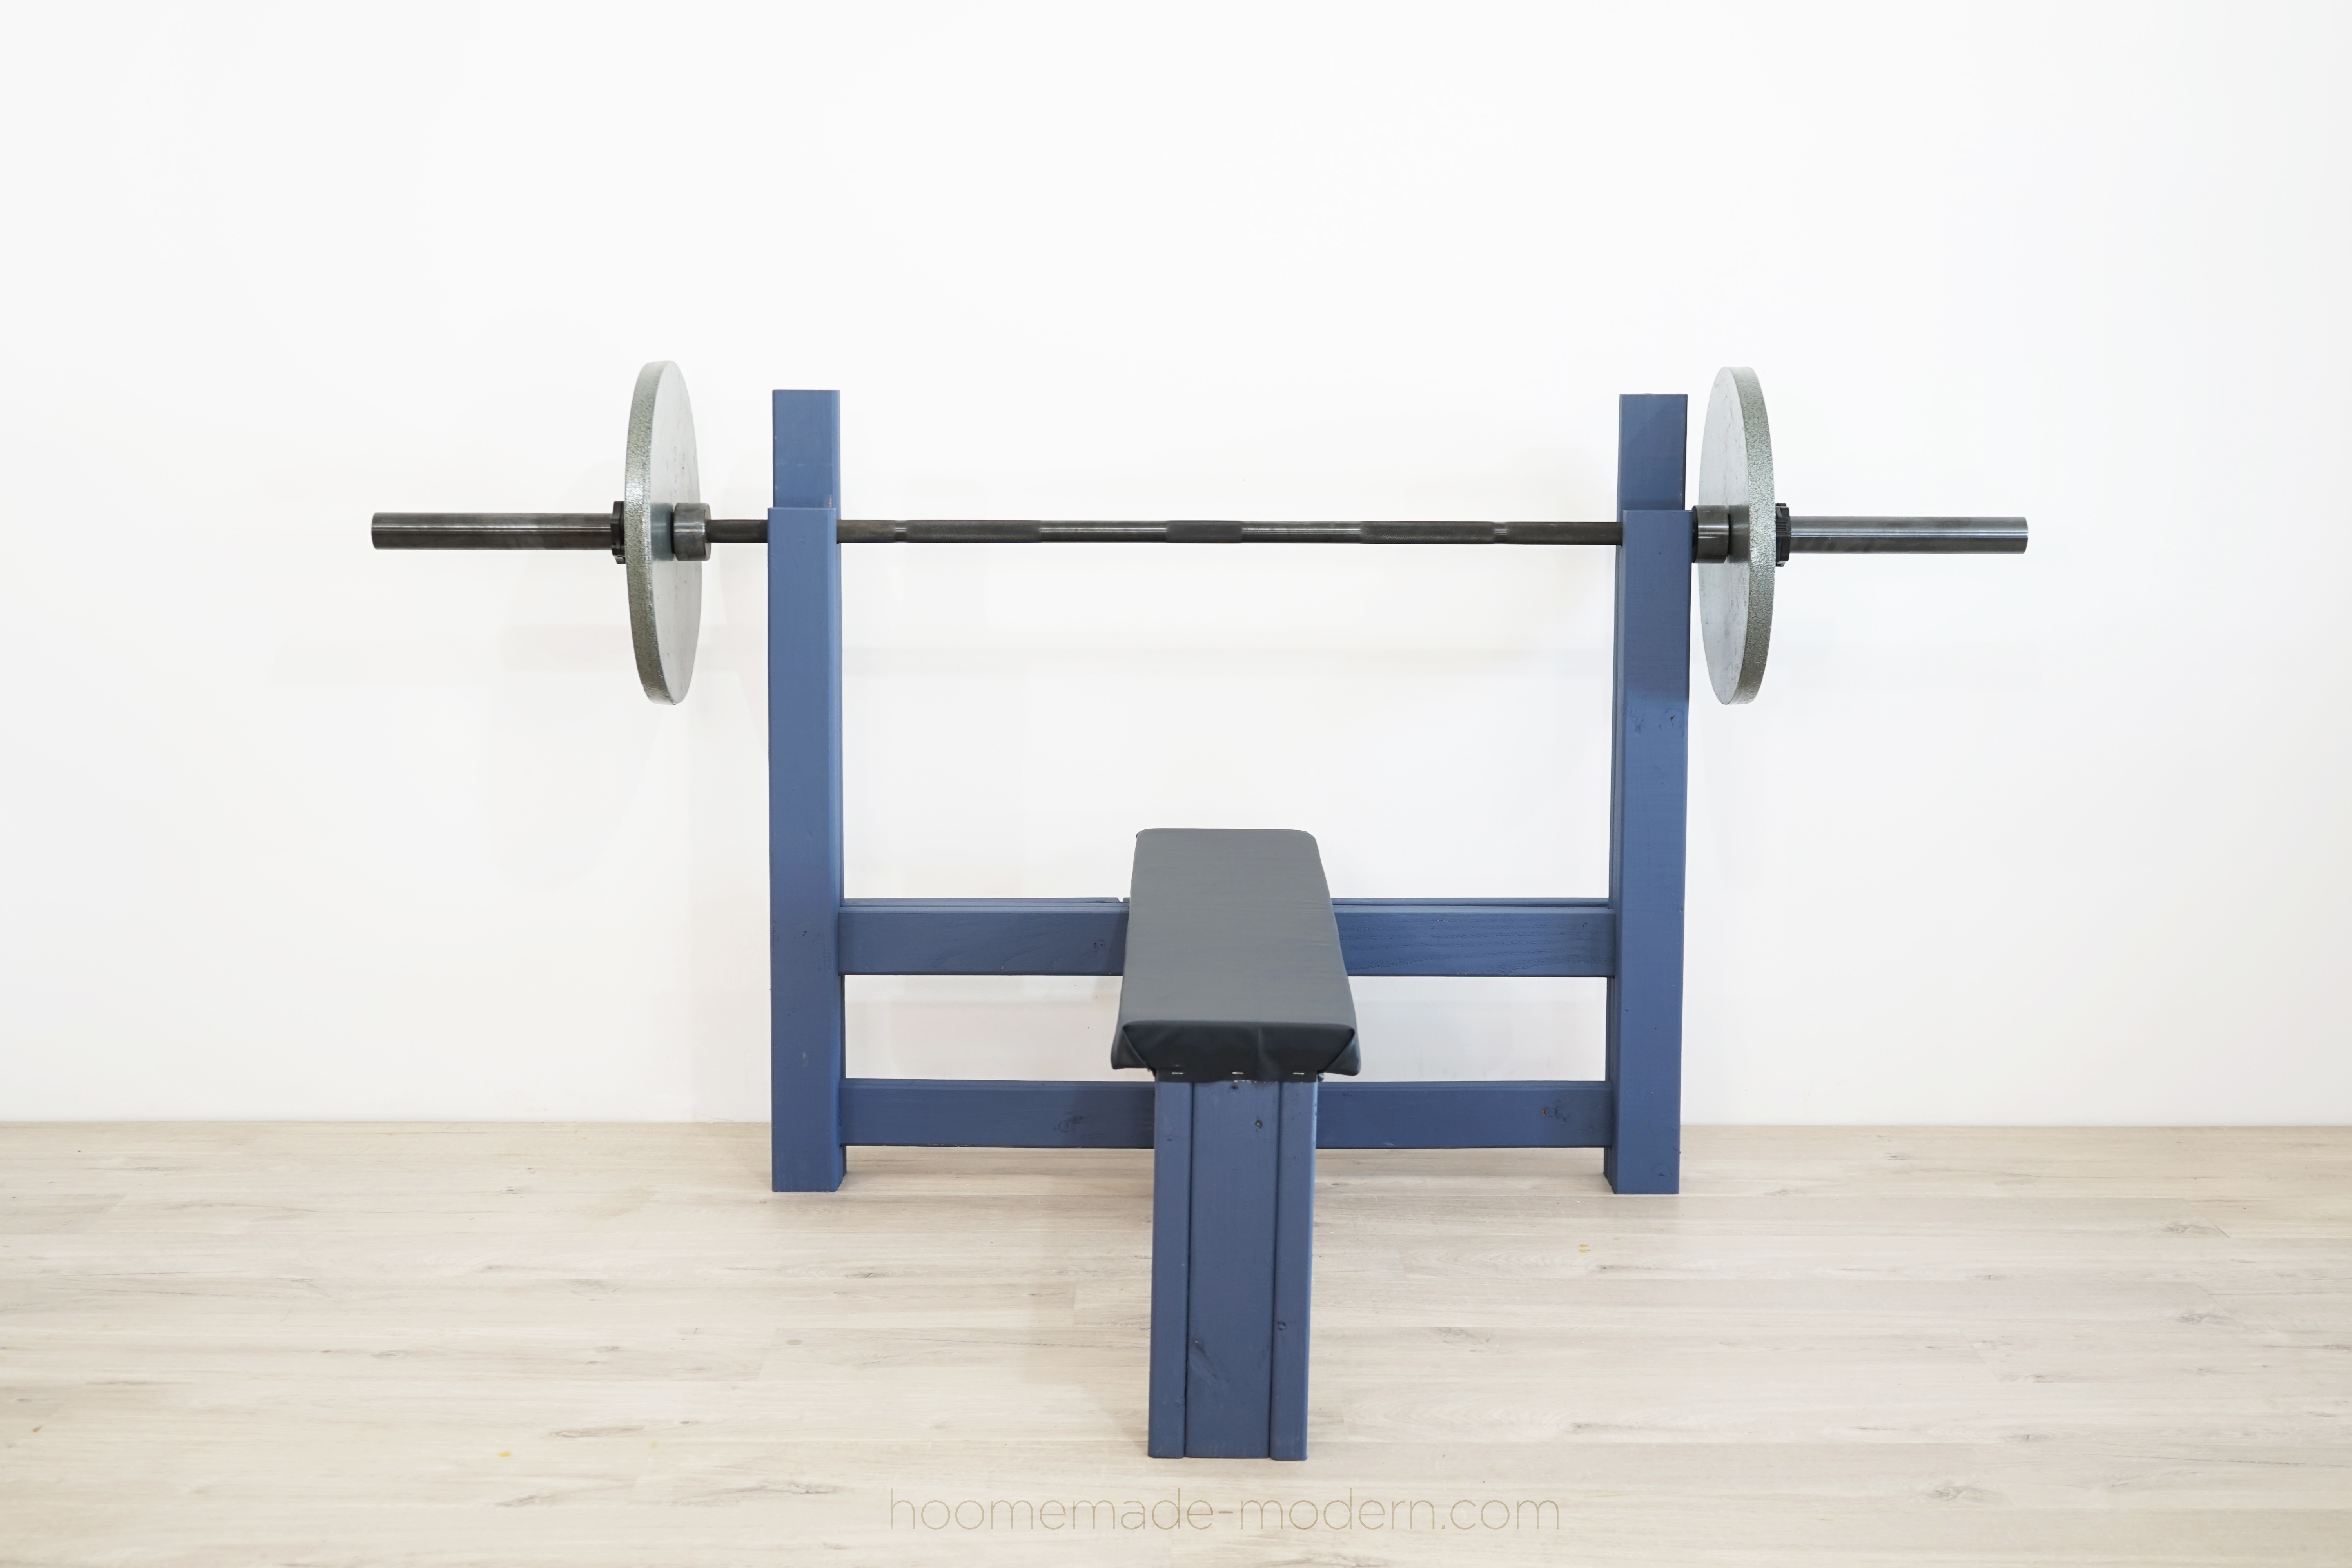 Best ideas about DIY Weight Bench . Save or Pin HomeMade Modern EP133 DIY Benchpress Now.